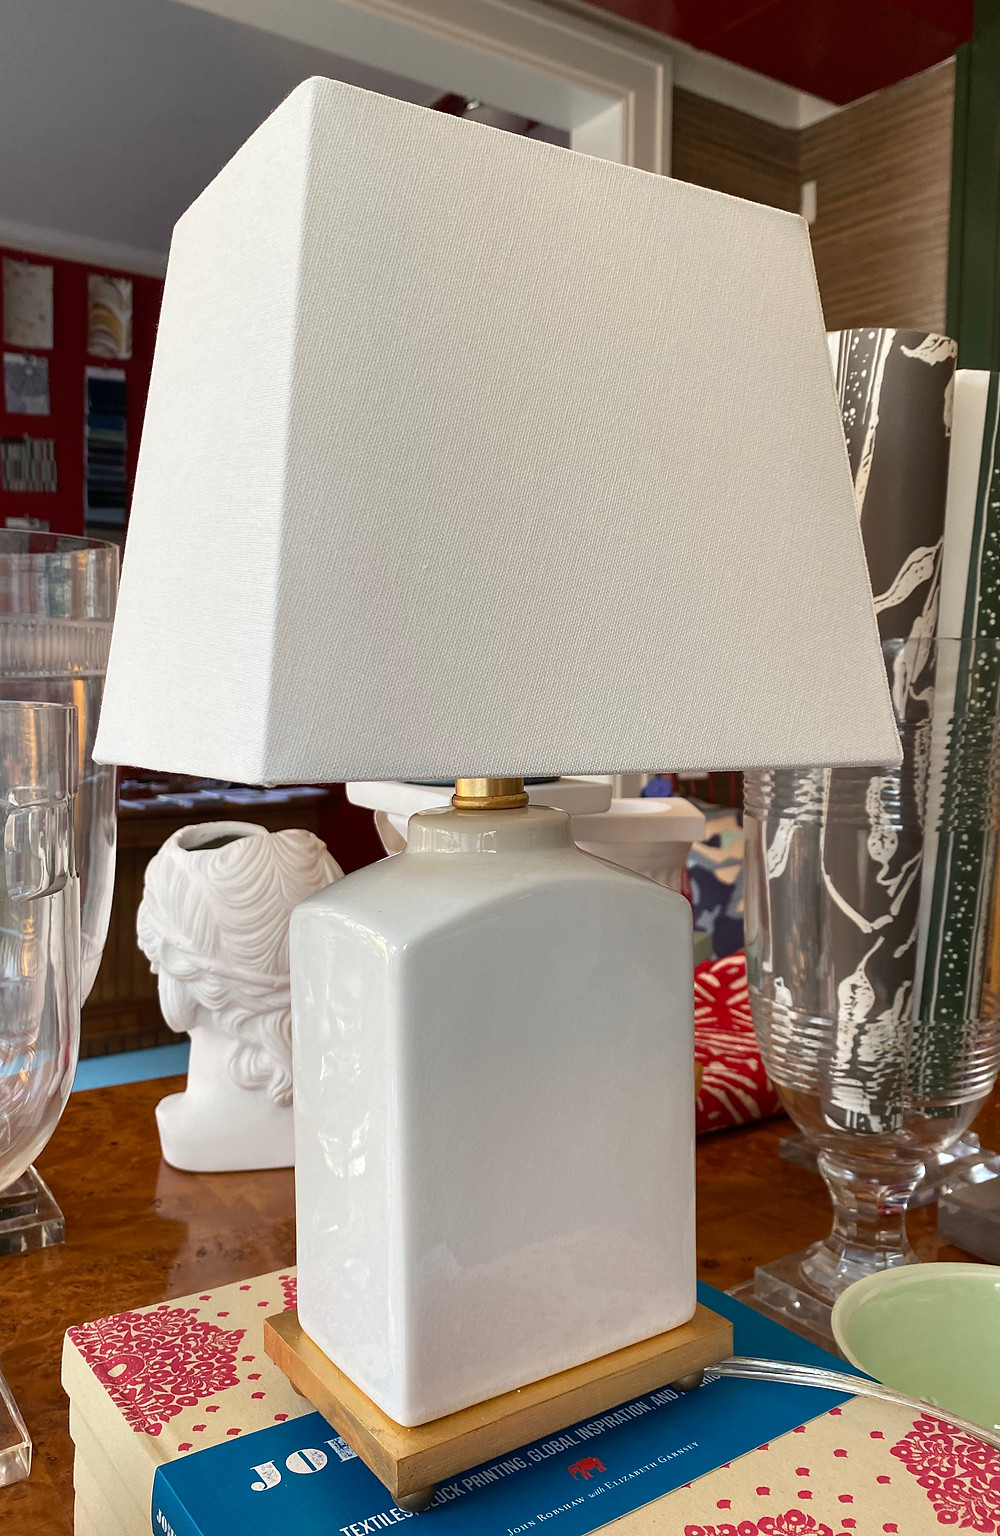 brynn table lamp white ceramic splayed shade small light gilded base designer favorites staples savings